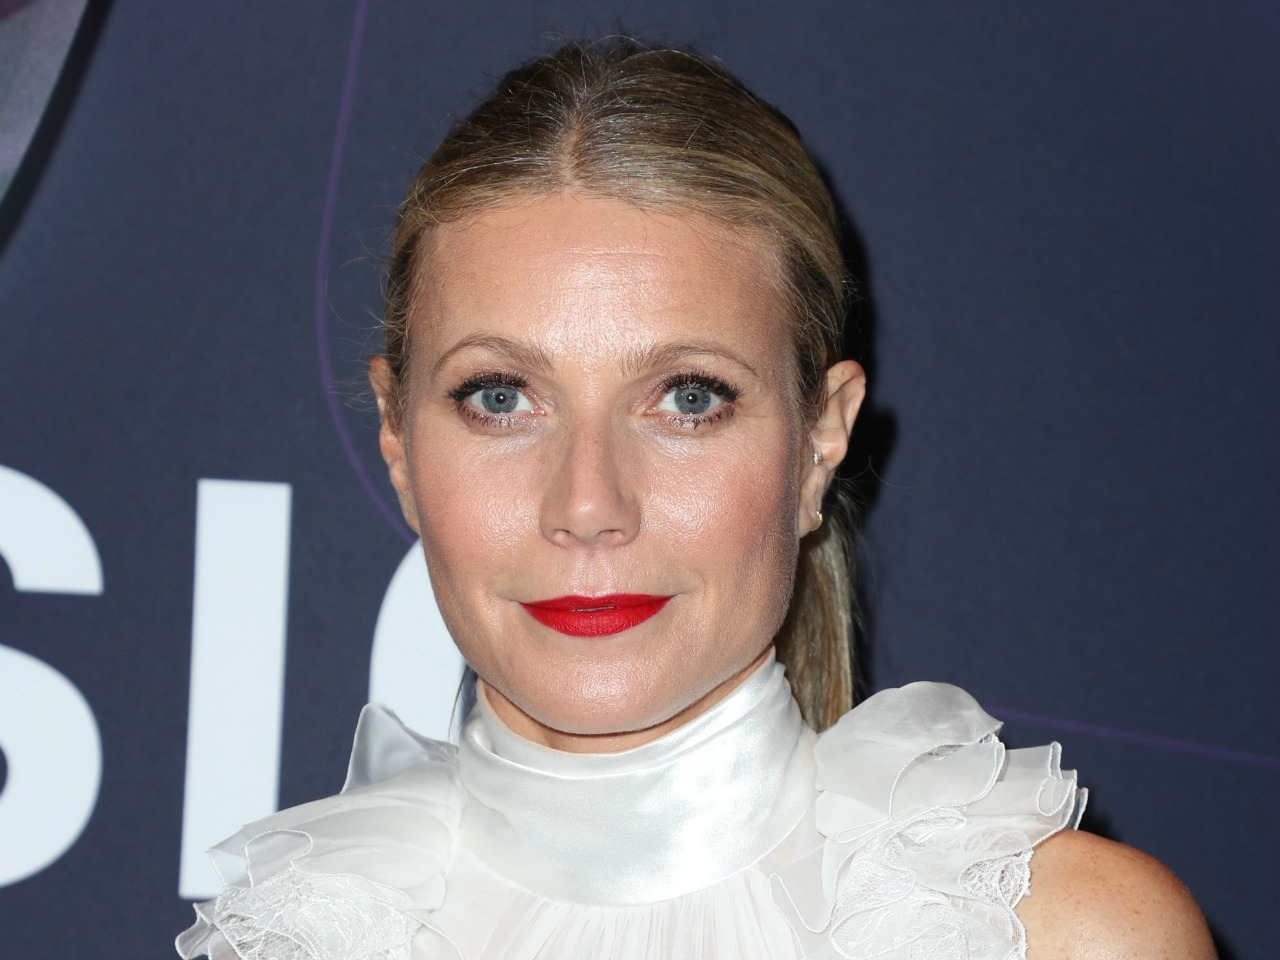 A dispute erupted between Canadian-born Dr. Jen Gunter and actor Gwyneth Paltrow's lifestyle site Goop